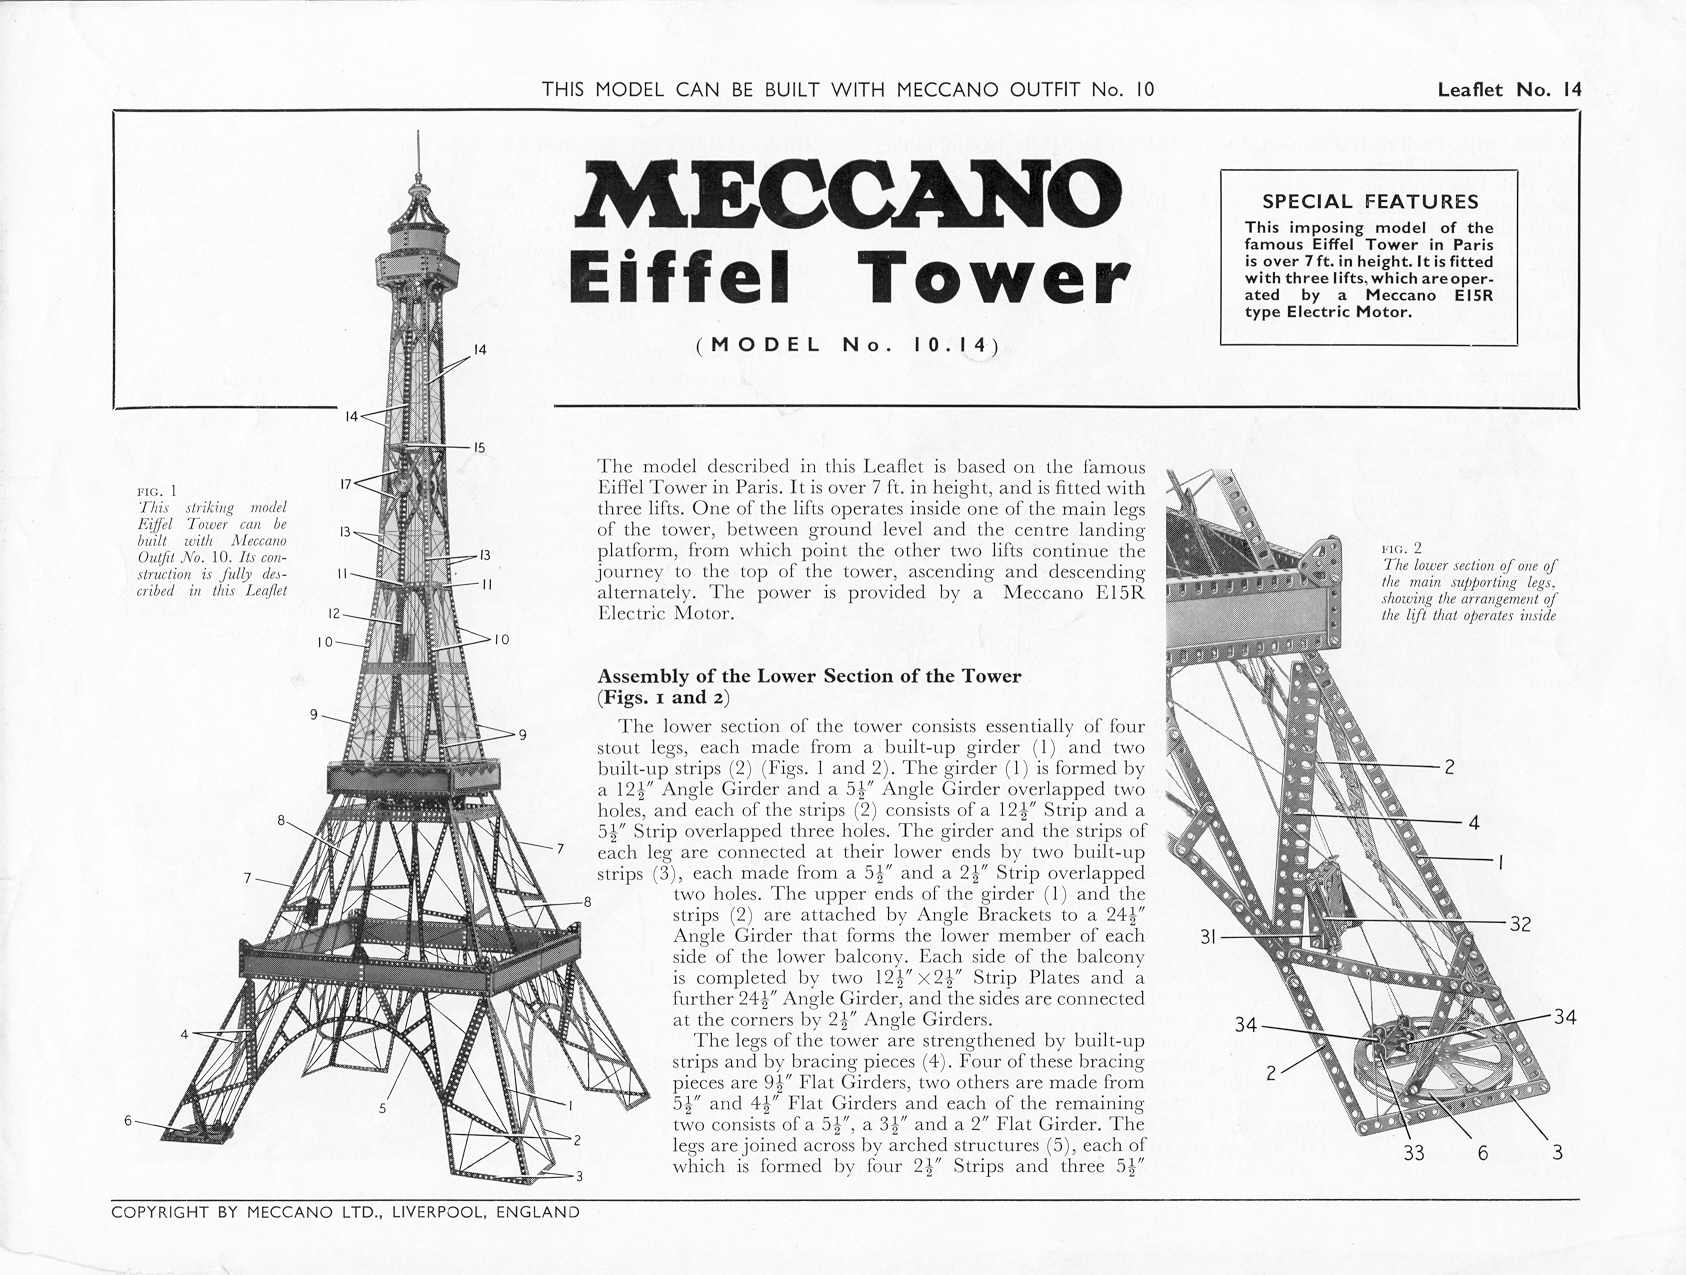 Meccano World The 3d Raddict Control Your Models Or Anything Else From Windows Pc No10 Outfit Instruction Leaflet